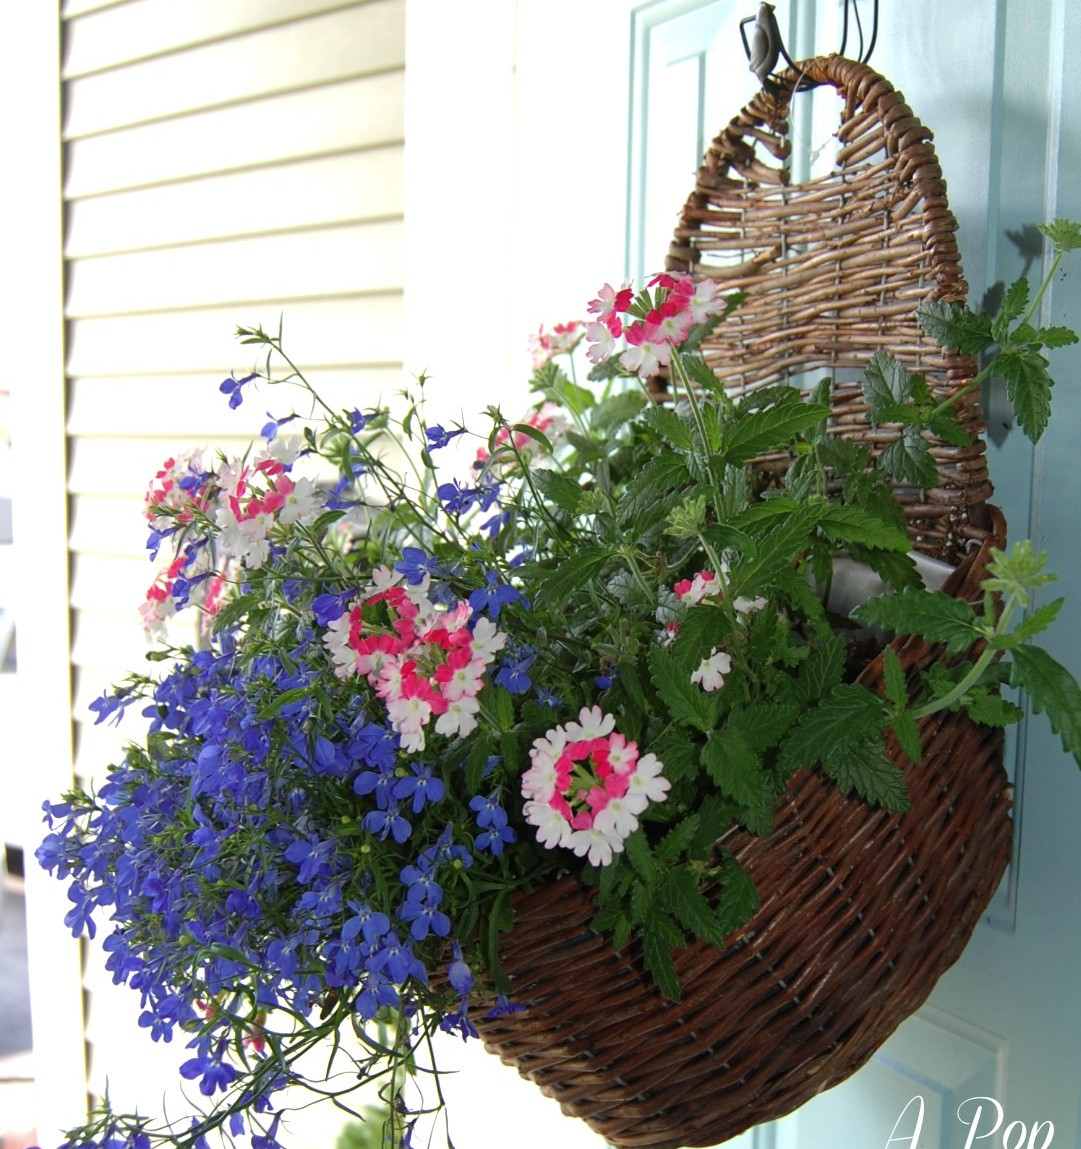 Container Gardening Planter Ideas: 10 Fun Ideas For Flowers!   A Pop Of  Pretty Blog (Canadian Home Decorating Blog   St. Johnu0027s, Canada)